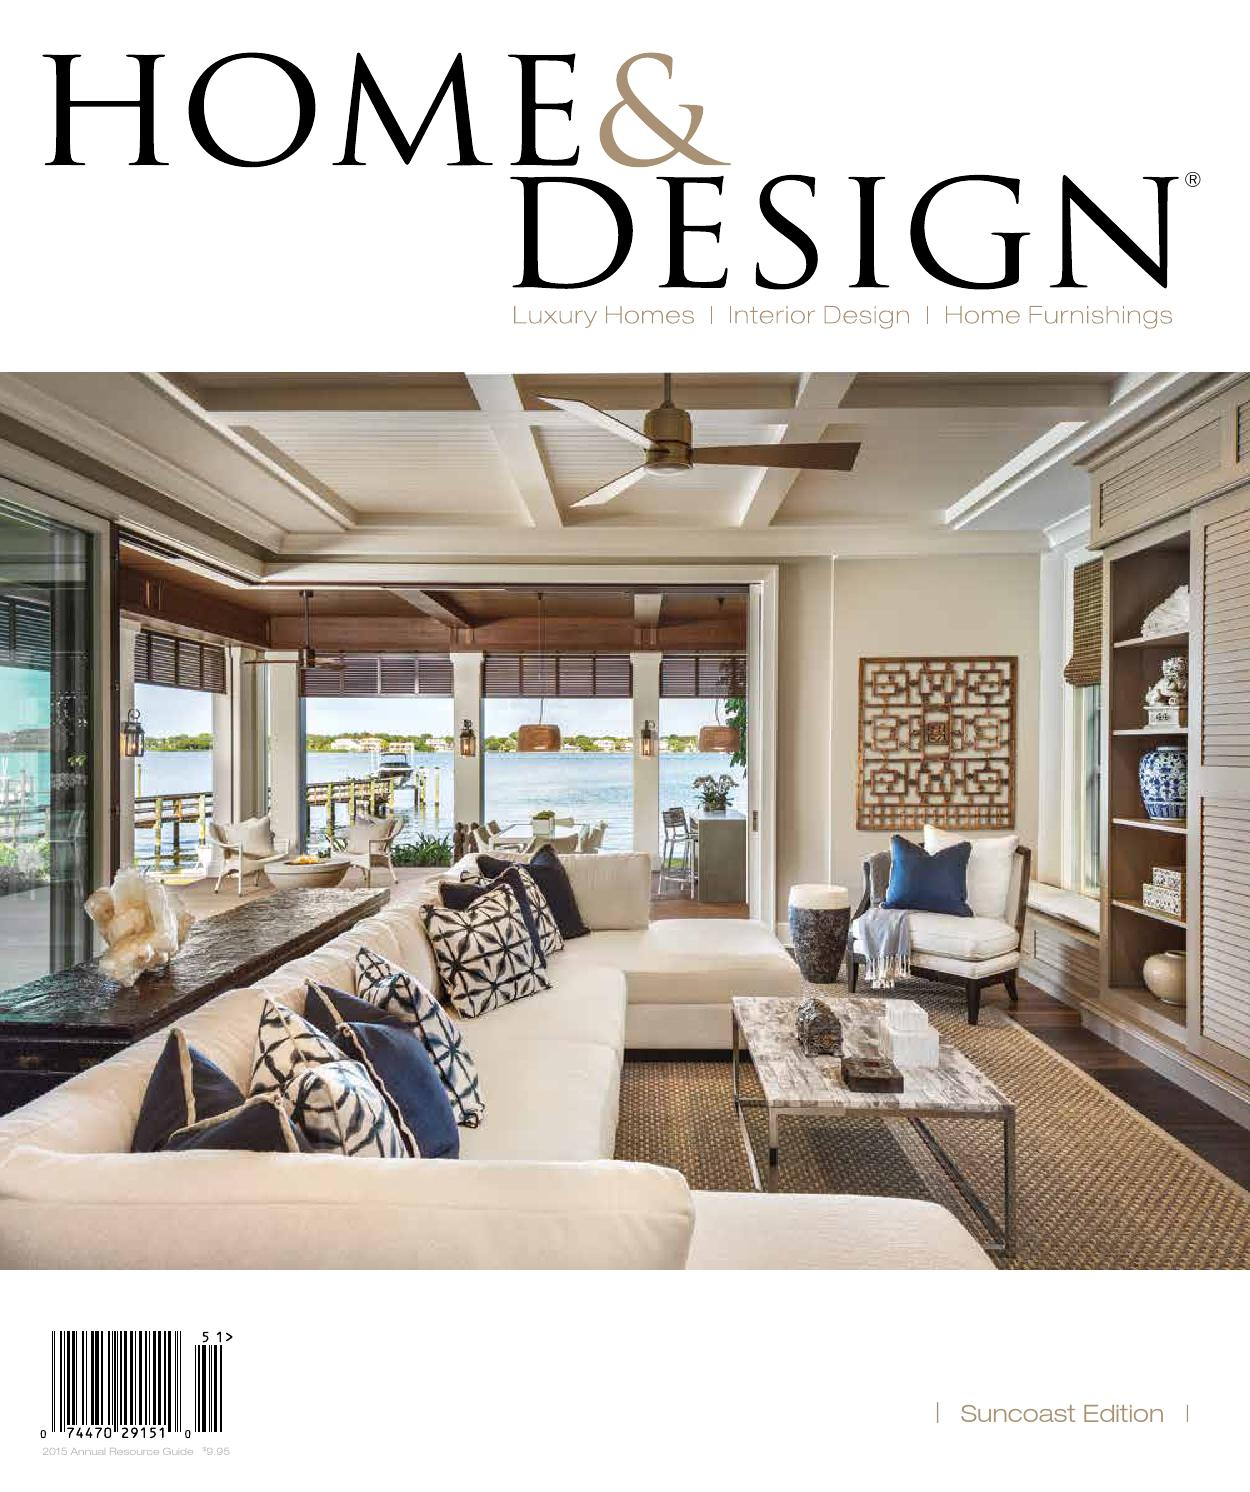 Home design magazine annual resource guide 2015 for Front of house magazine